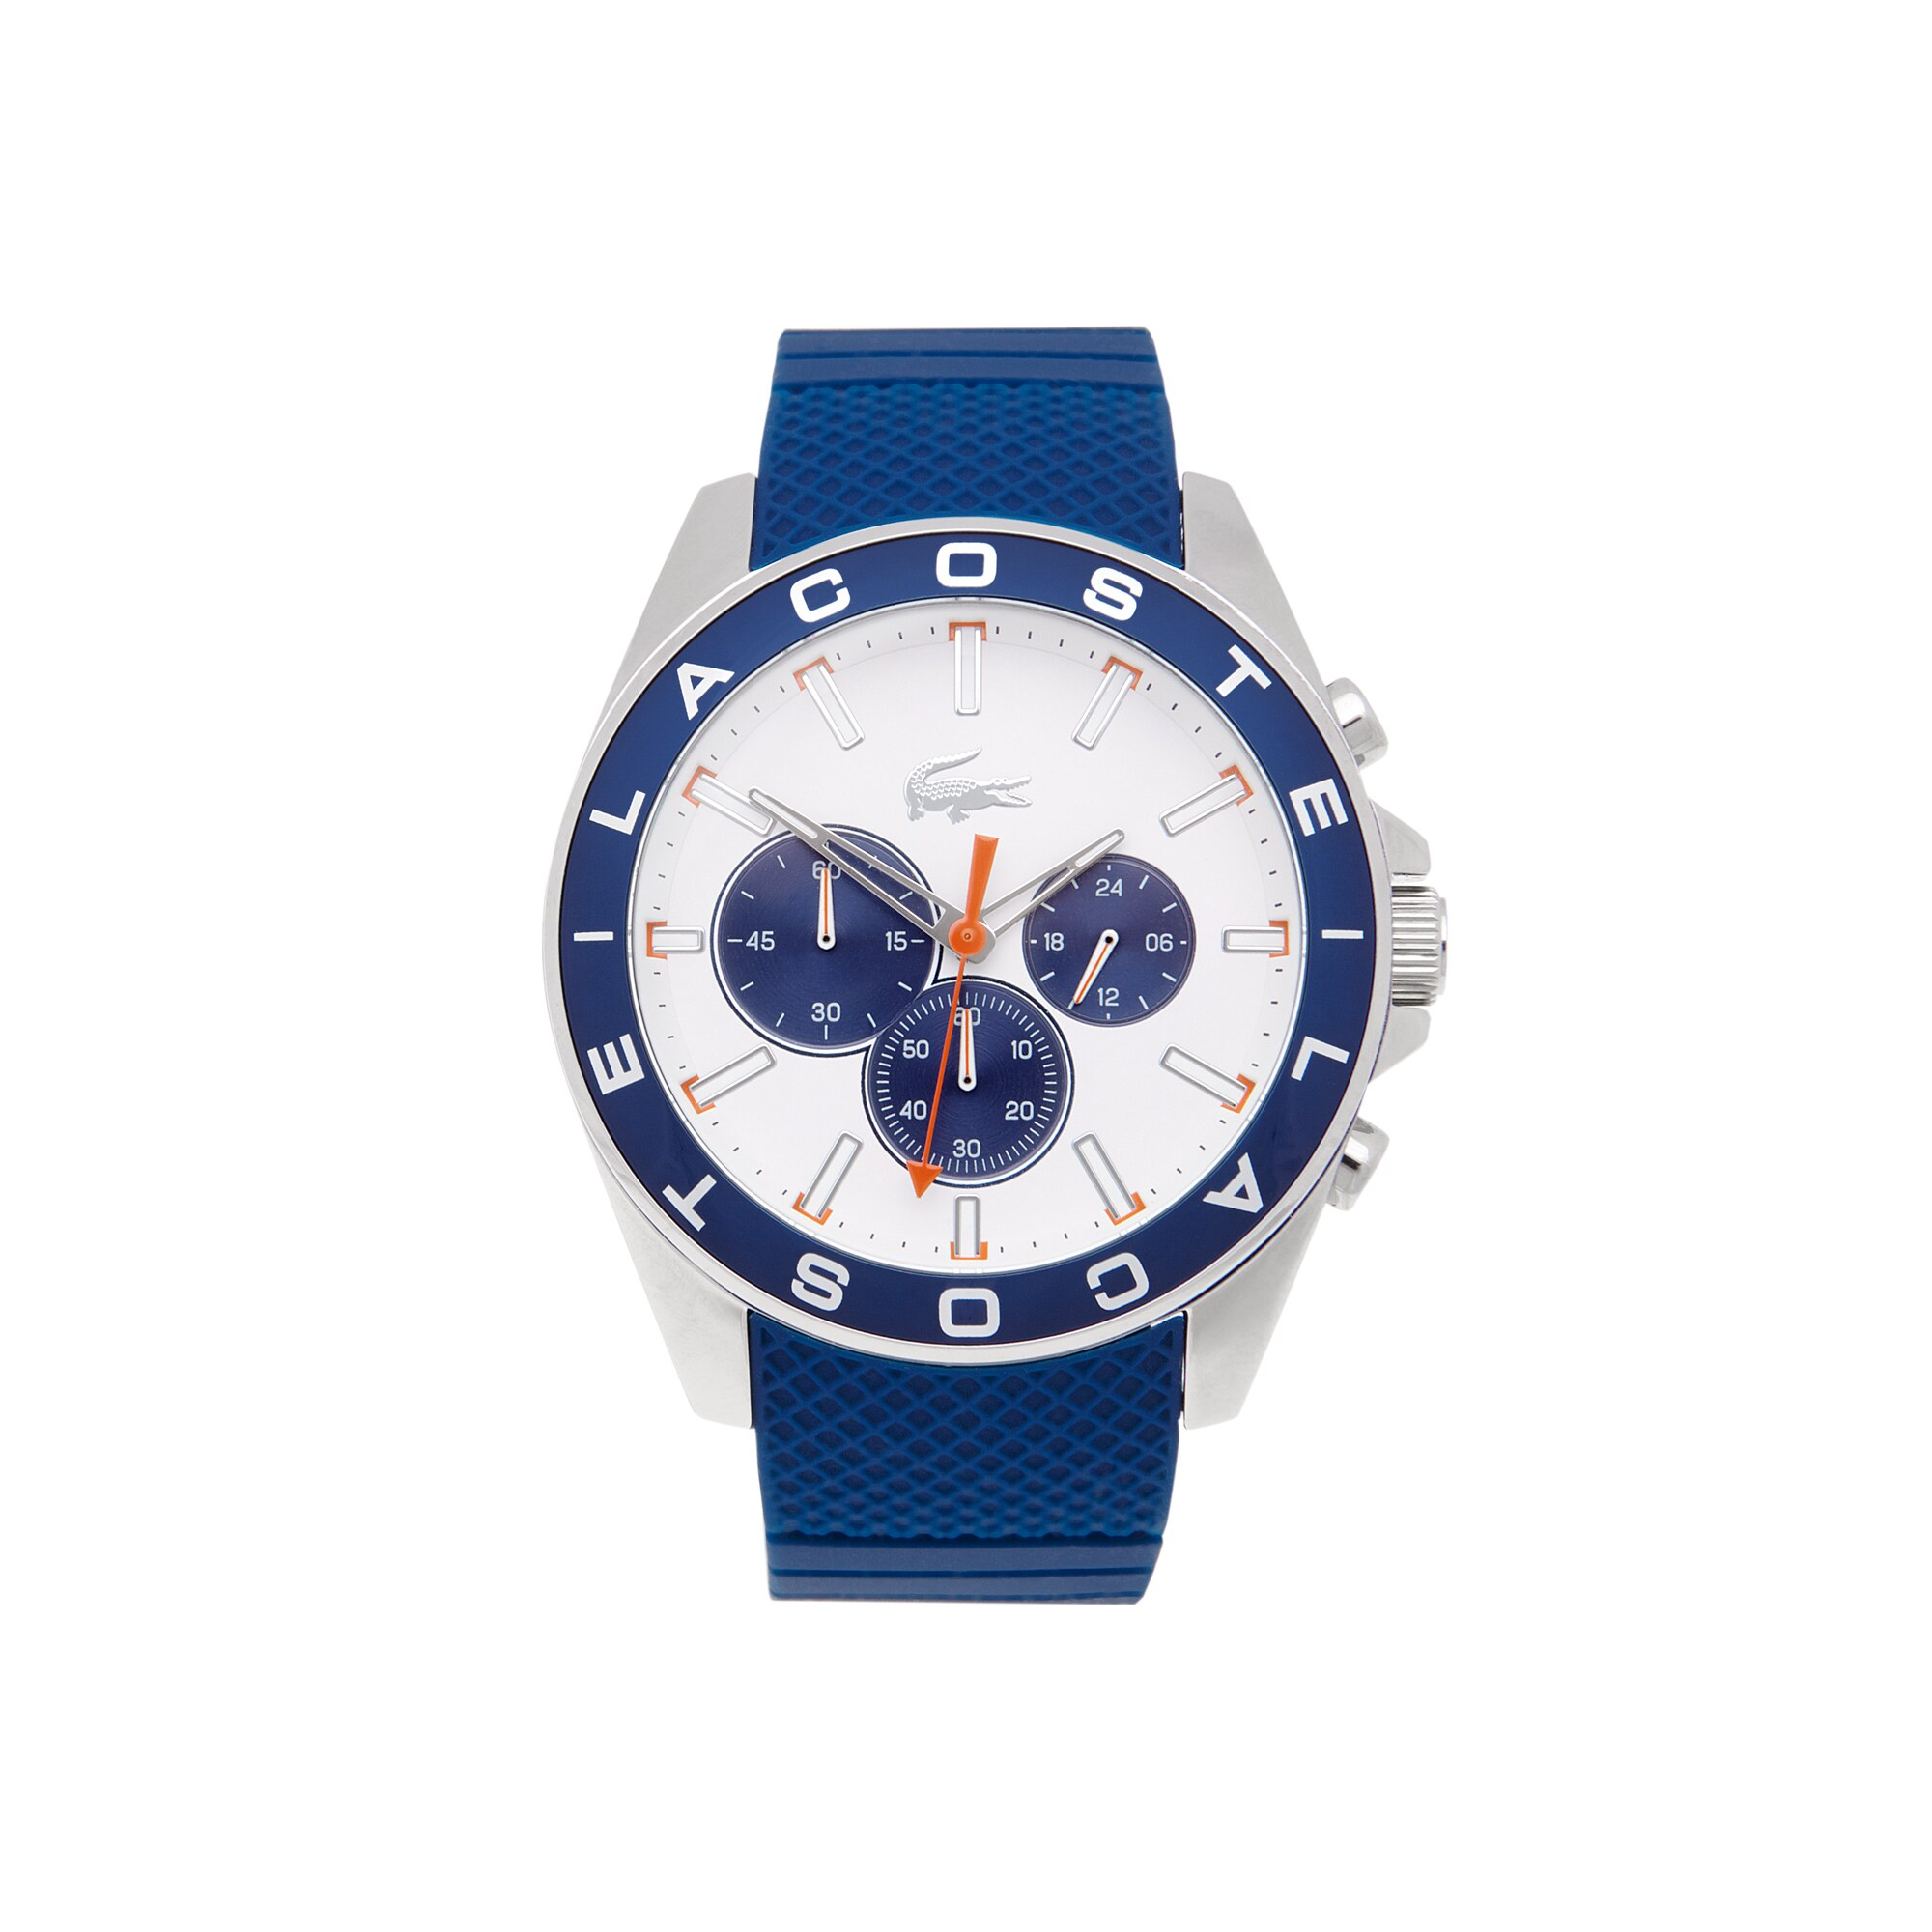 Westport chronograph Watch - blue silicone strap